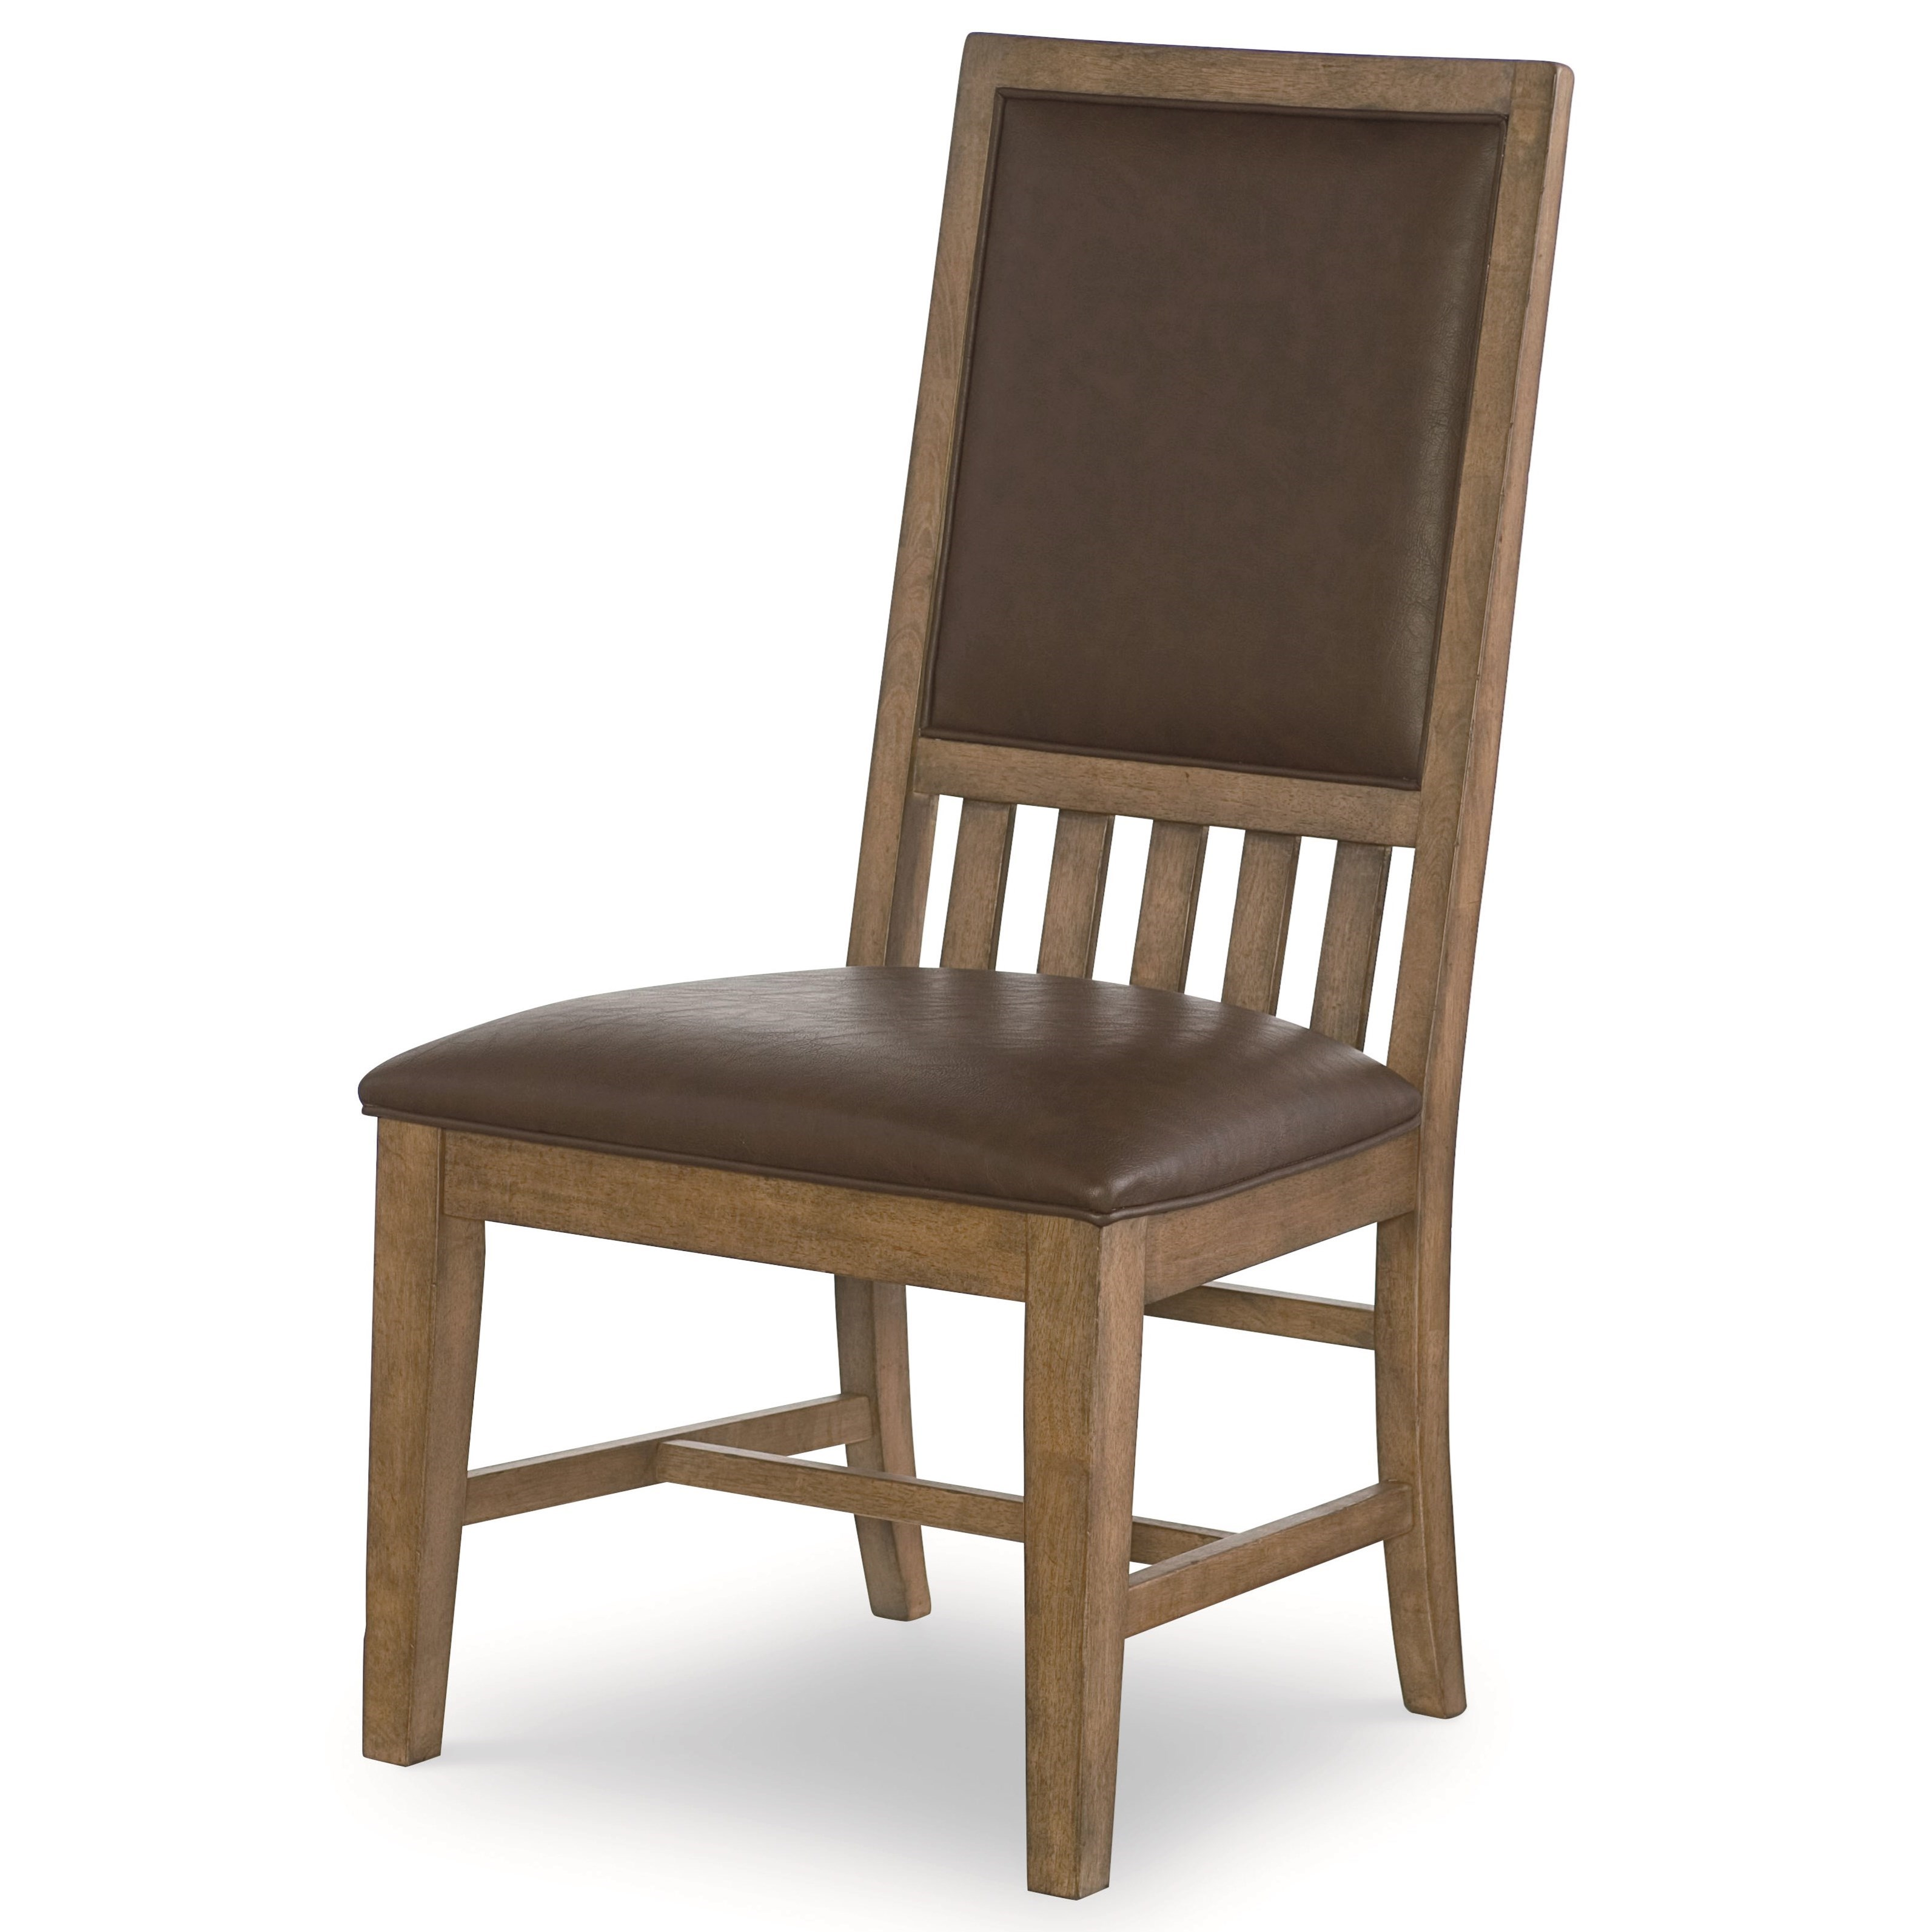 Legacy Classic Metalworks Upholstered Back Side Chair  - Item Number: 5610-440 KD